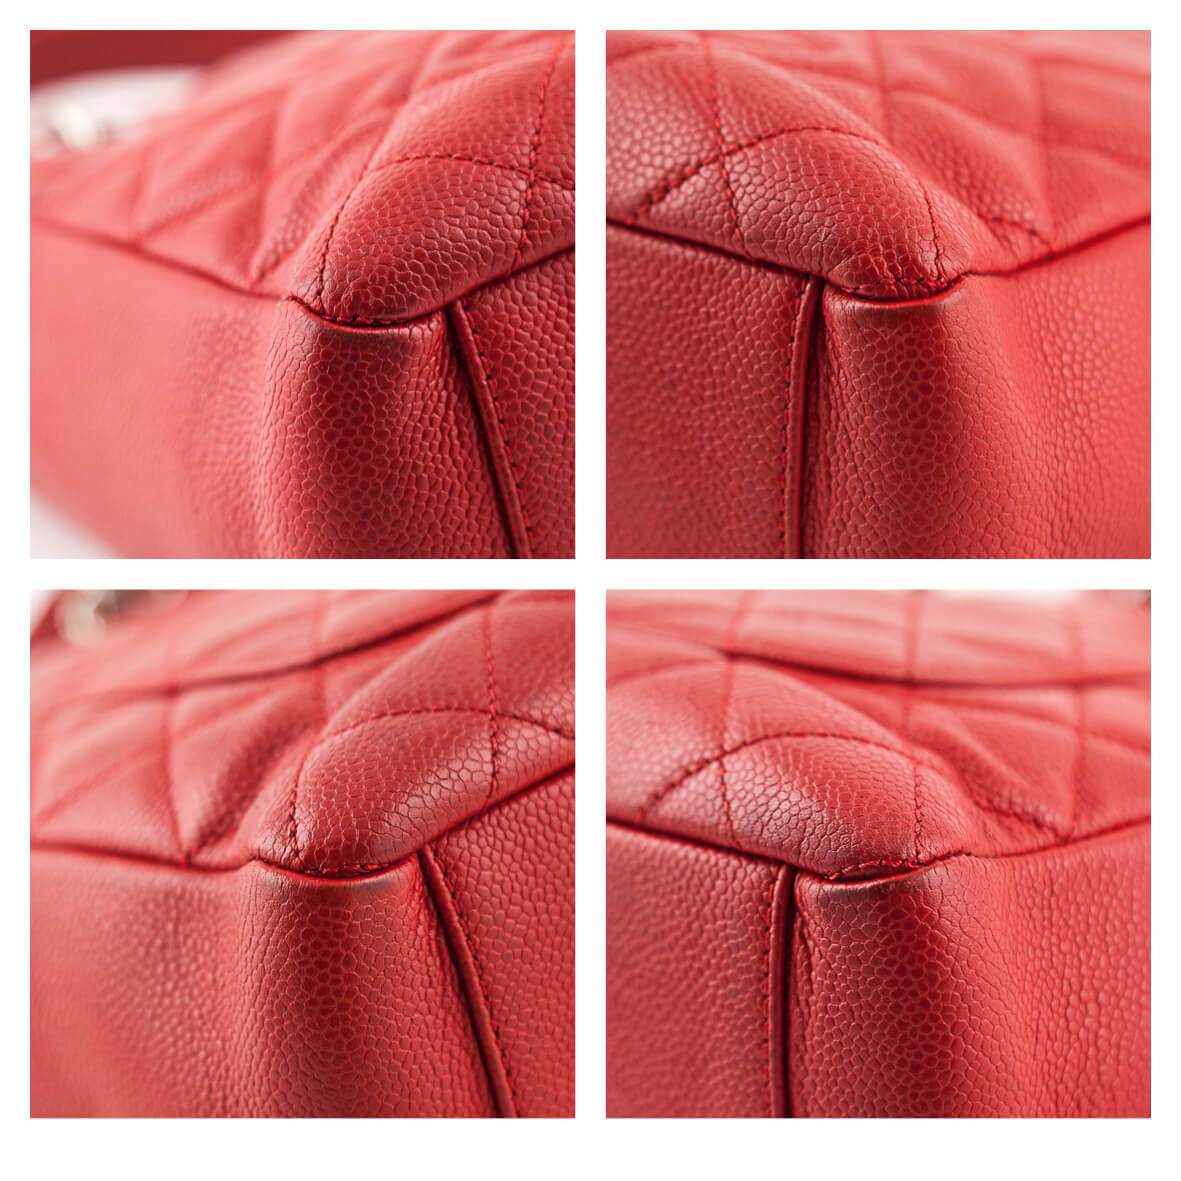 b41336d9ca53c ... Chanel Red Caviar Petit Shopping Tote SHW - LOVE that BAG - Preowned  Authentic Designer Handbags ...